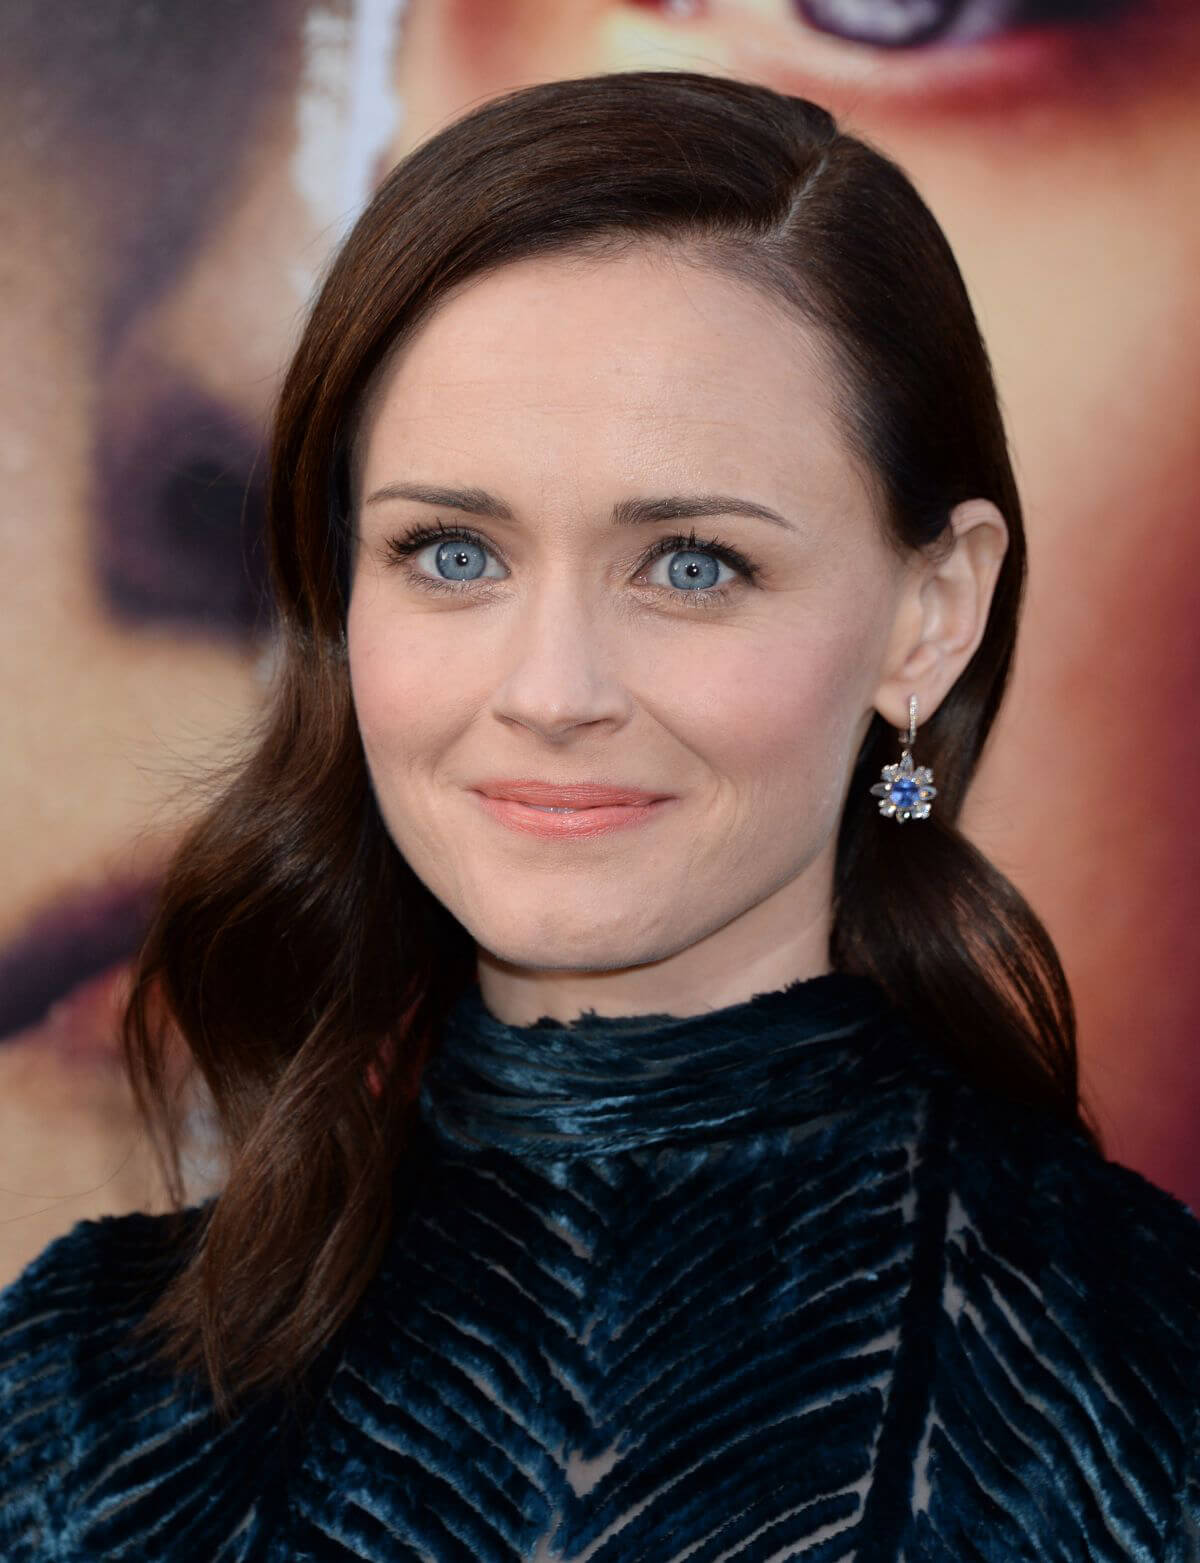 ALEXIS BLEDEL at Gilmore Girls: A Year in the Life